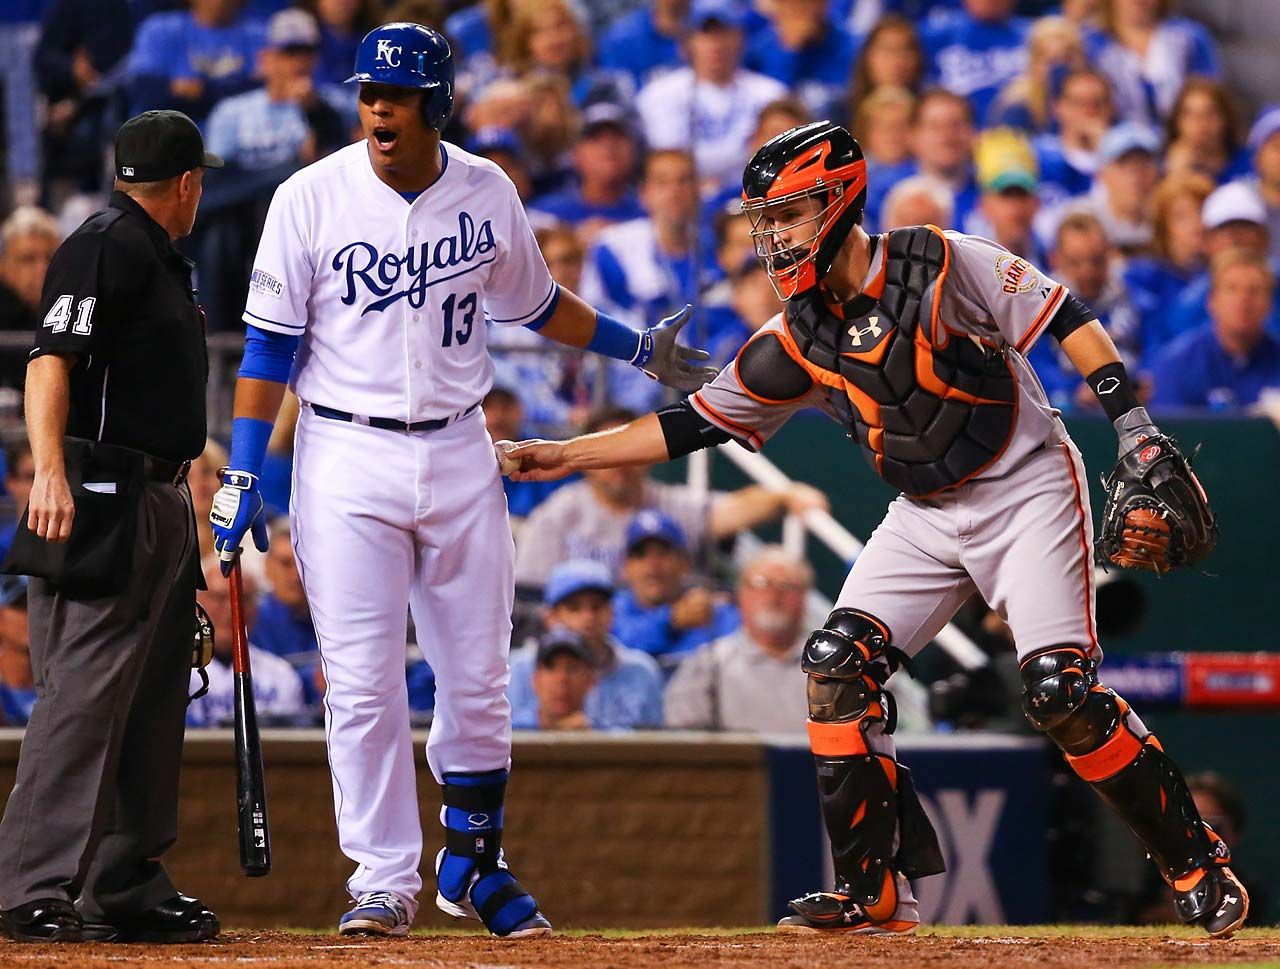 Salvador Perez argues with the umpire as he is tagged by Buster Posey.